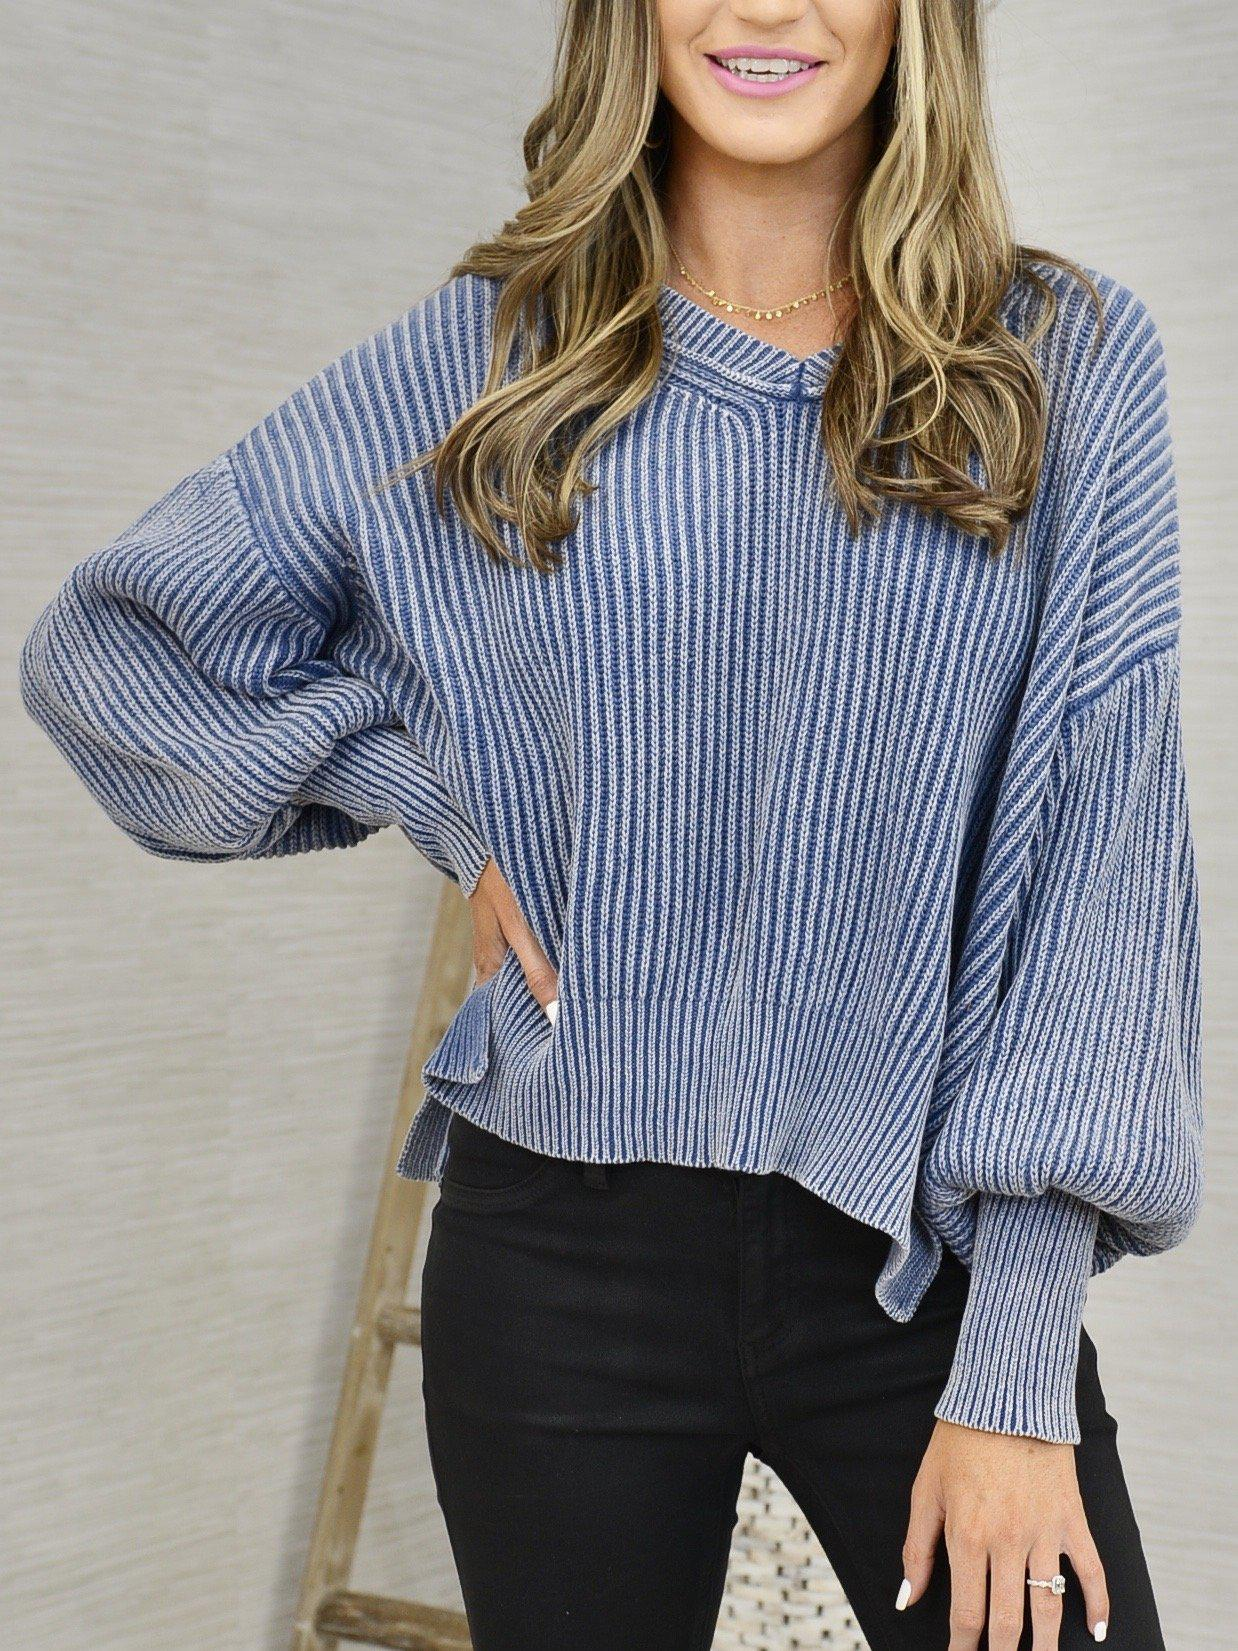 Washed to wear Sweater-Women's -New Arrivals-Runway Seven